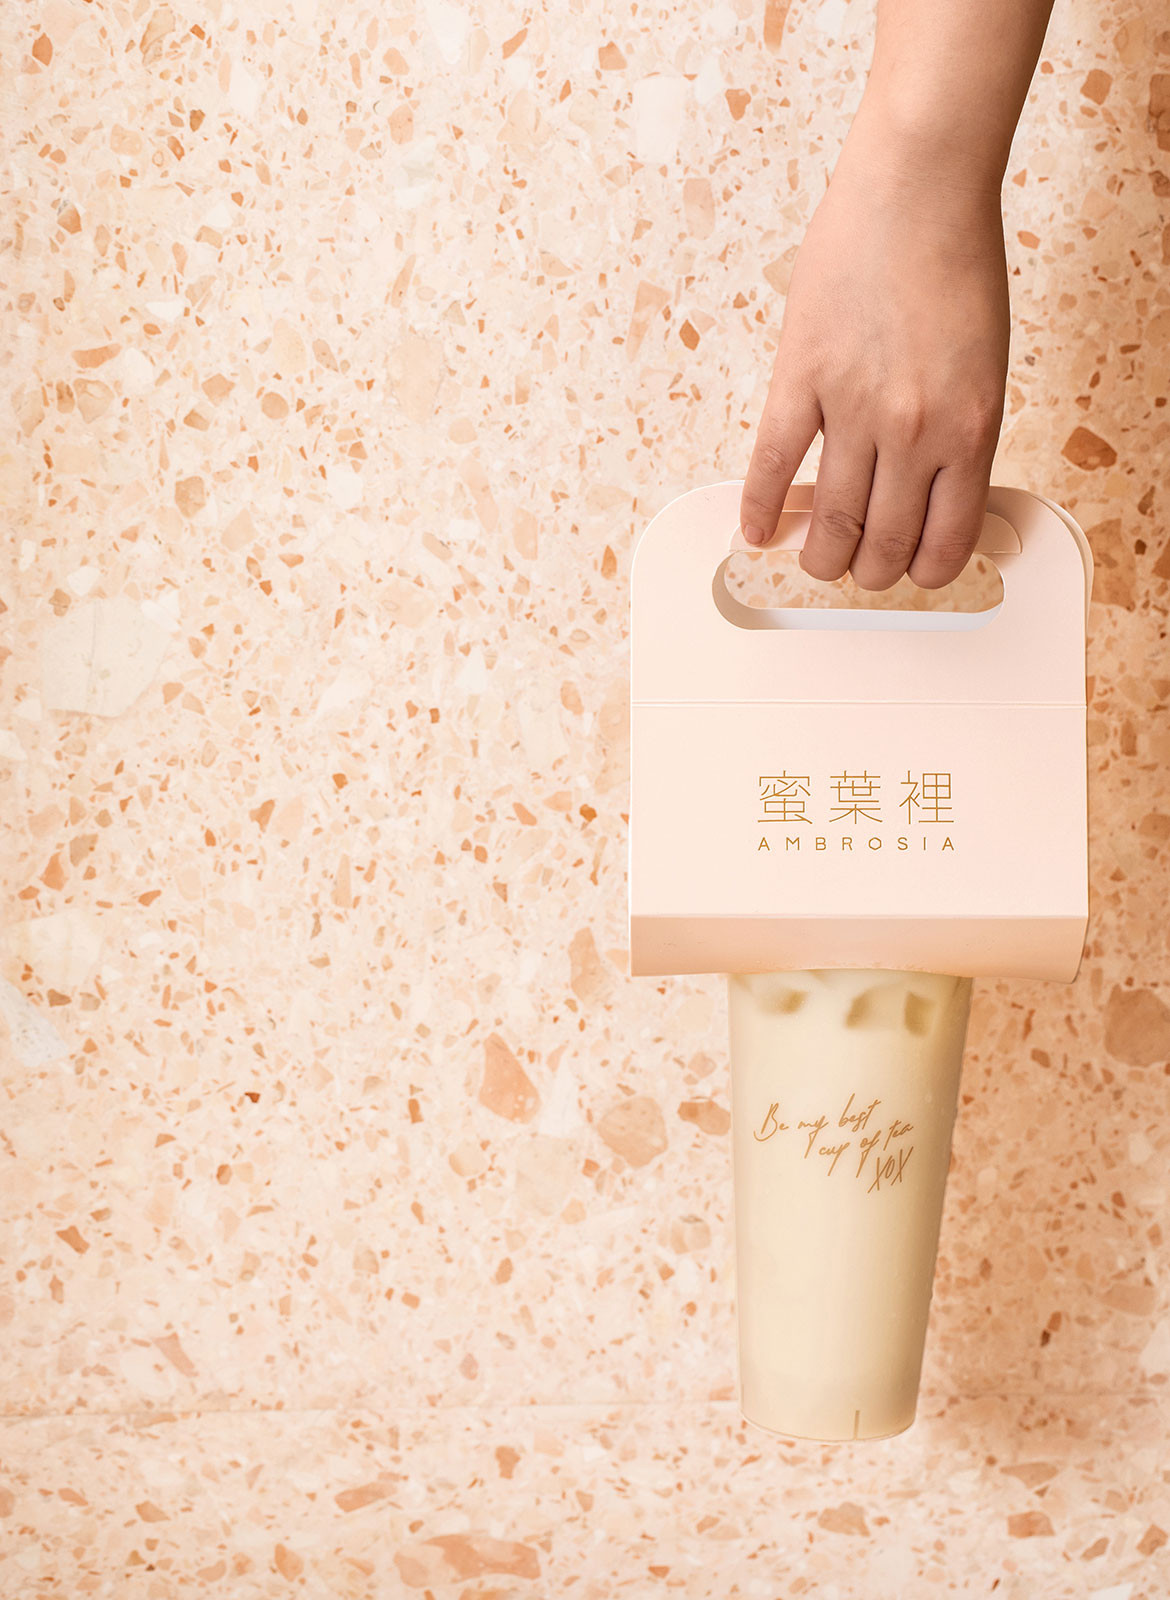 Ambrosia Biasol Bubble Tea CC James Morgan branding package